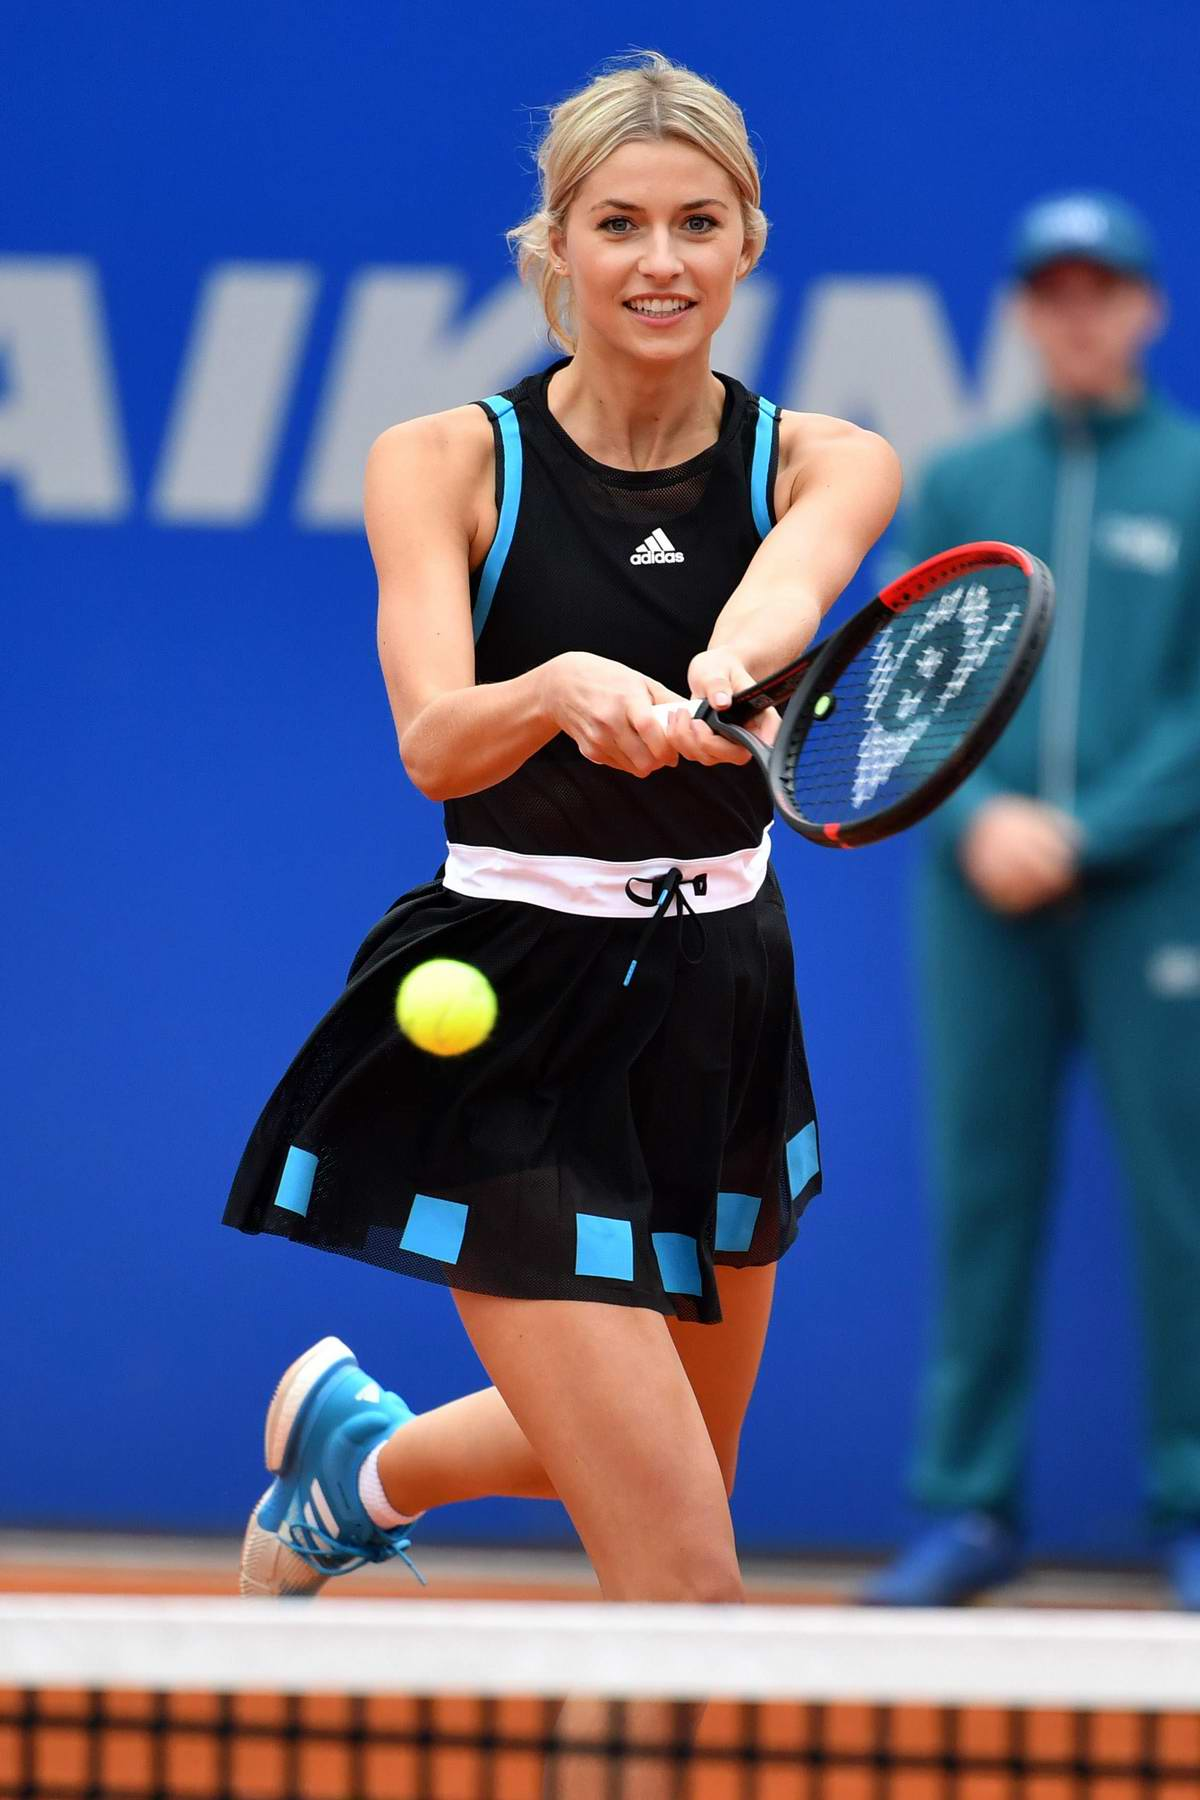 Lena Gercke joins Alex Zverev for an exhibition match at the BMW Open in Münich, Germany